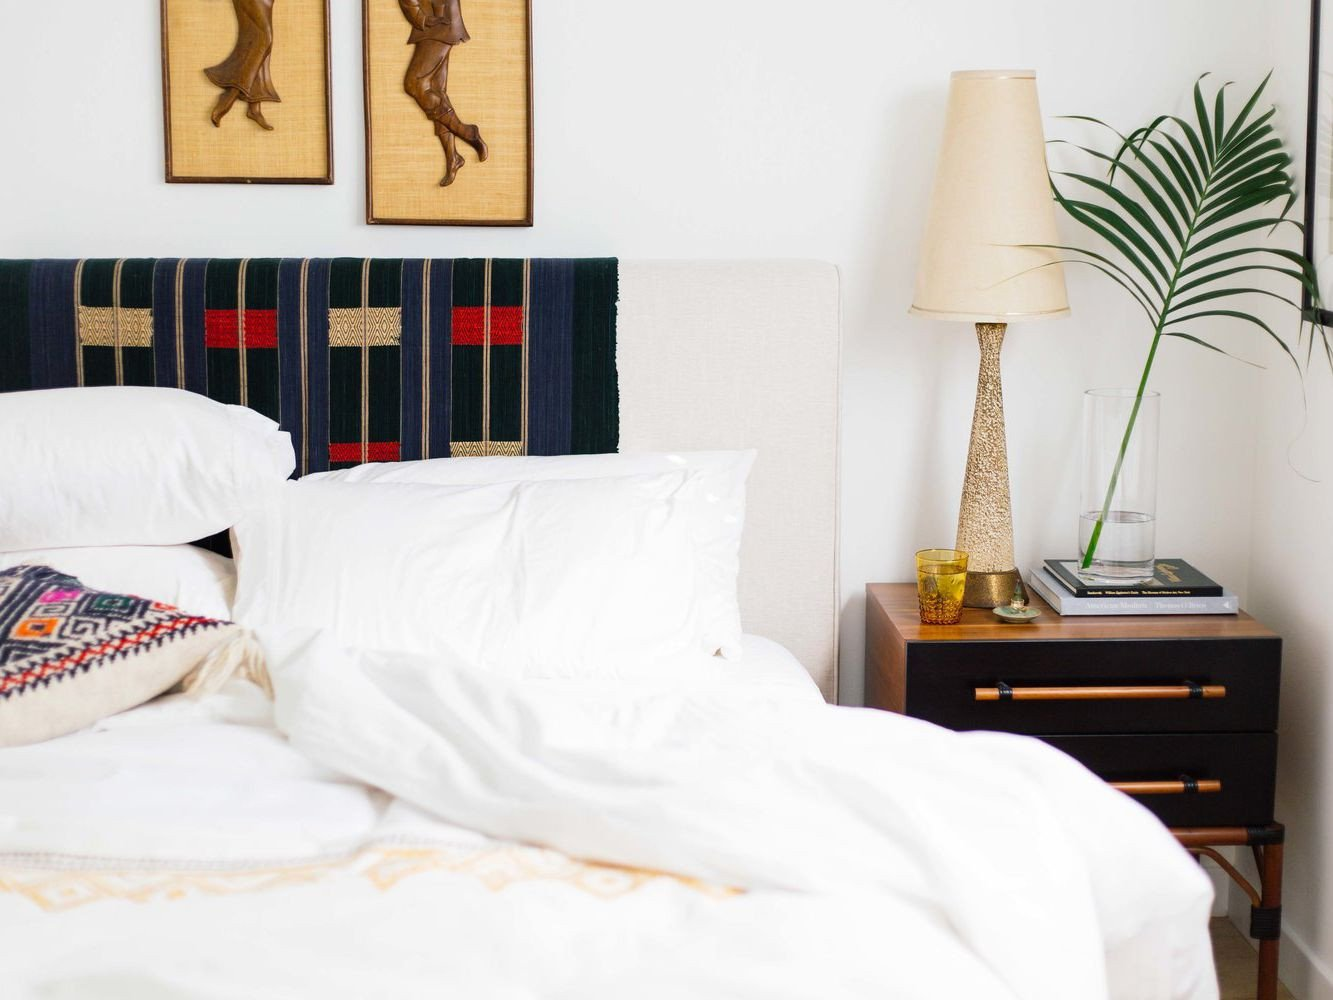 Cheap Bedroom Decor Online Shopping Inspirational the Best Bud Decorating Blogs